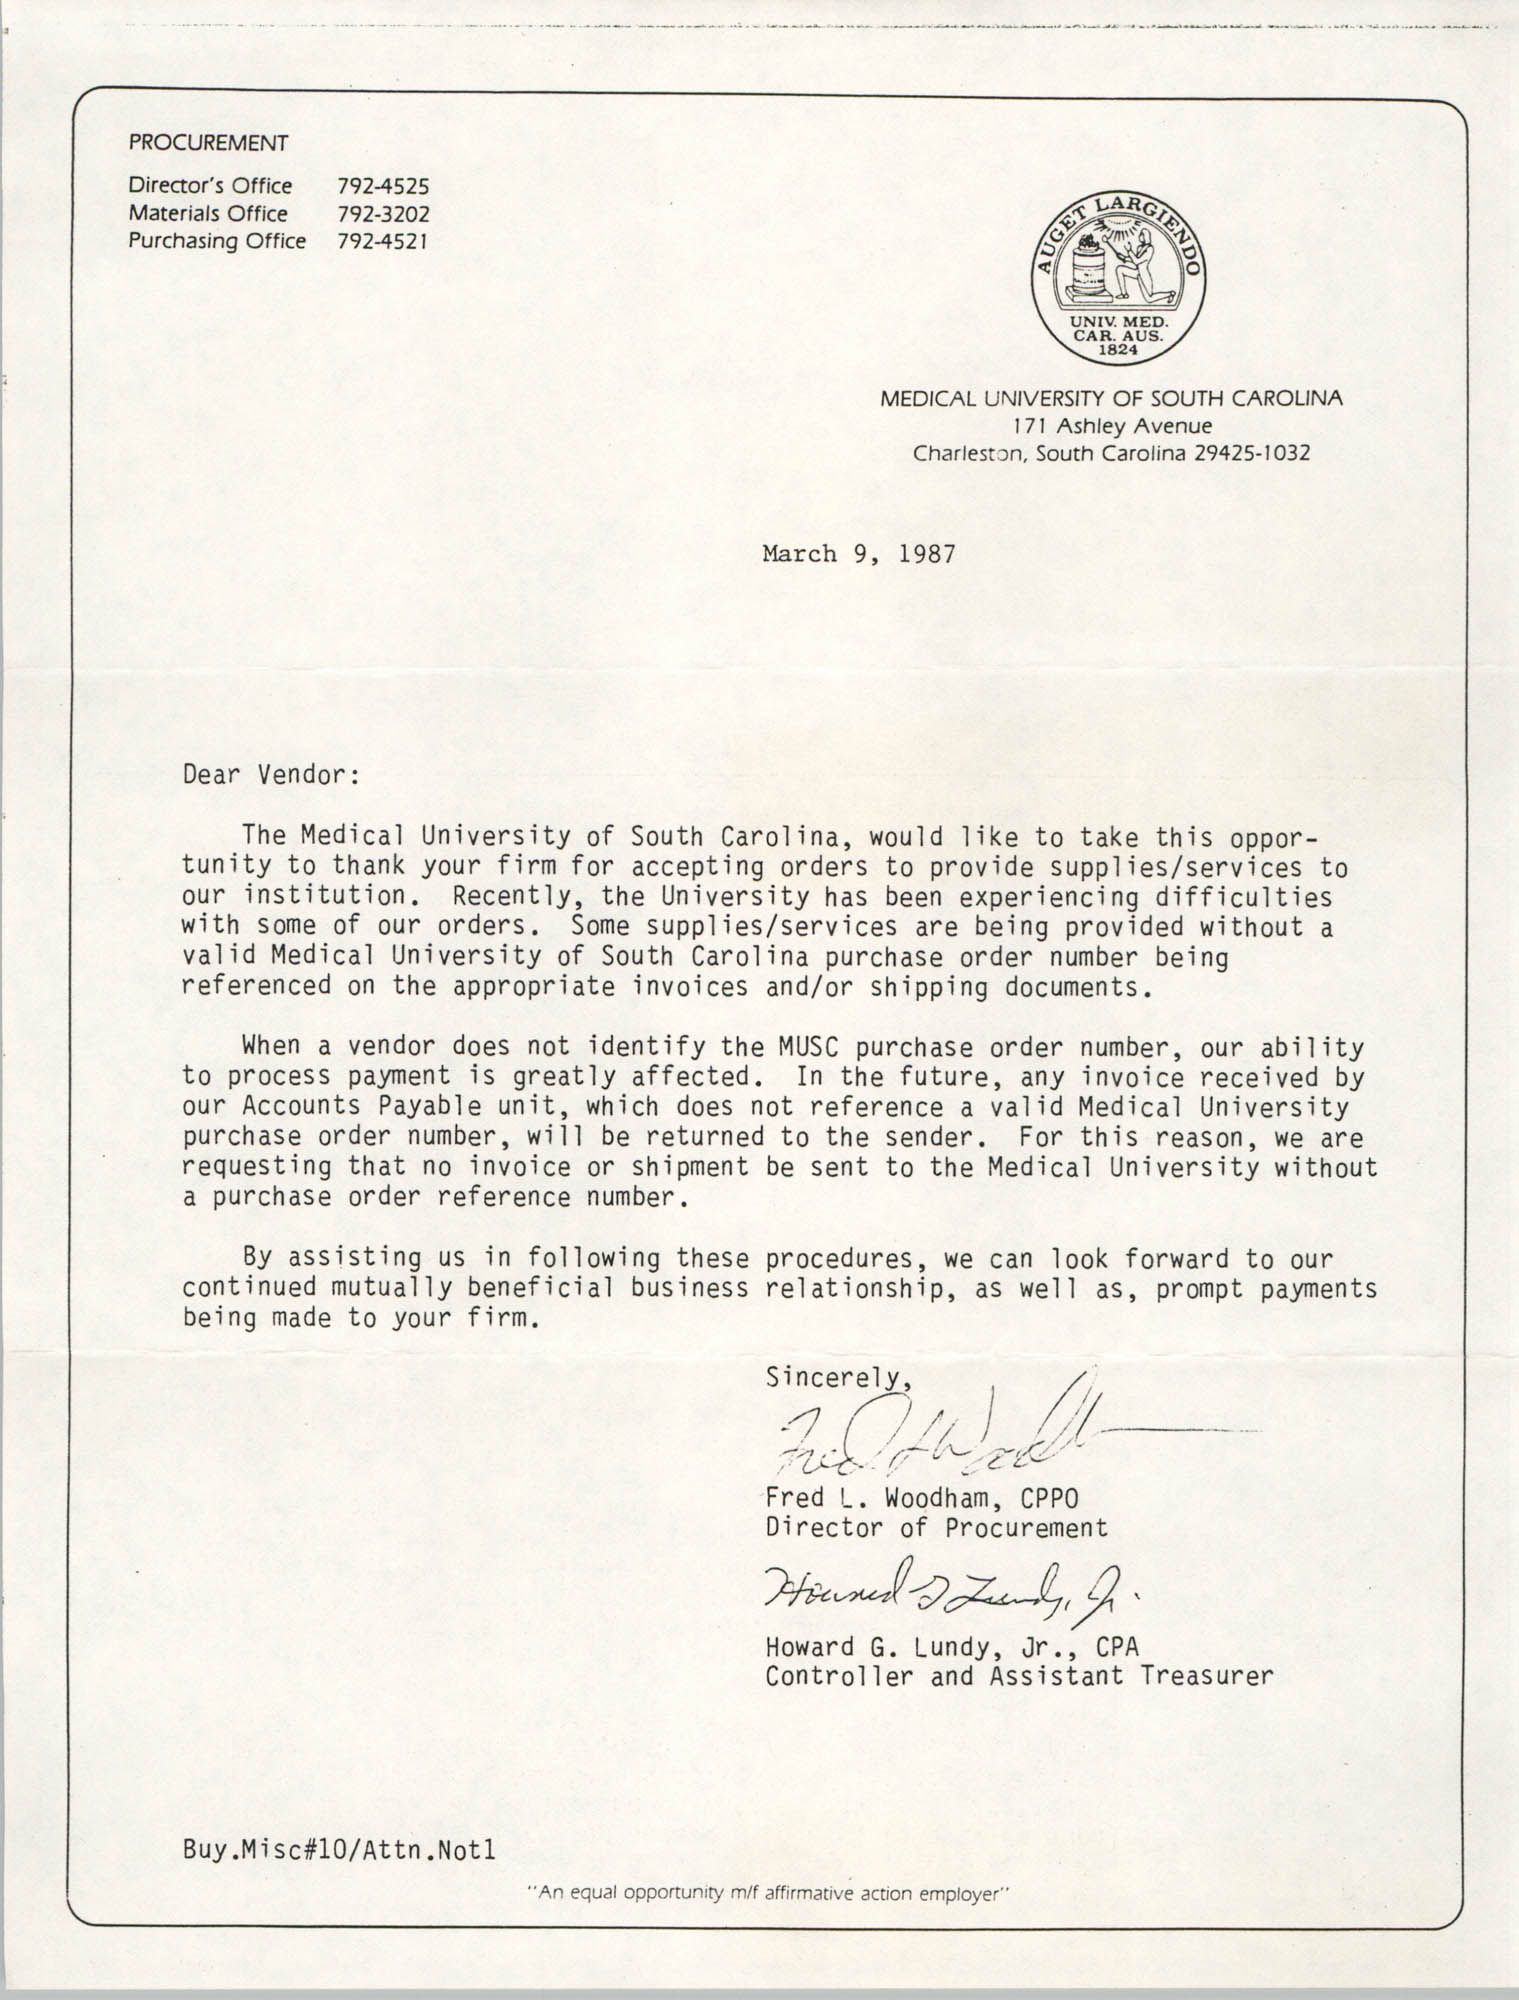 Letter from Fred L. Woodham and Howard G. Lundy, Jr., Medical University of South Carolina (MUSC), March 9, 1987